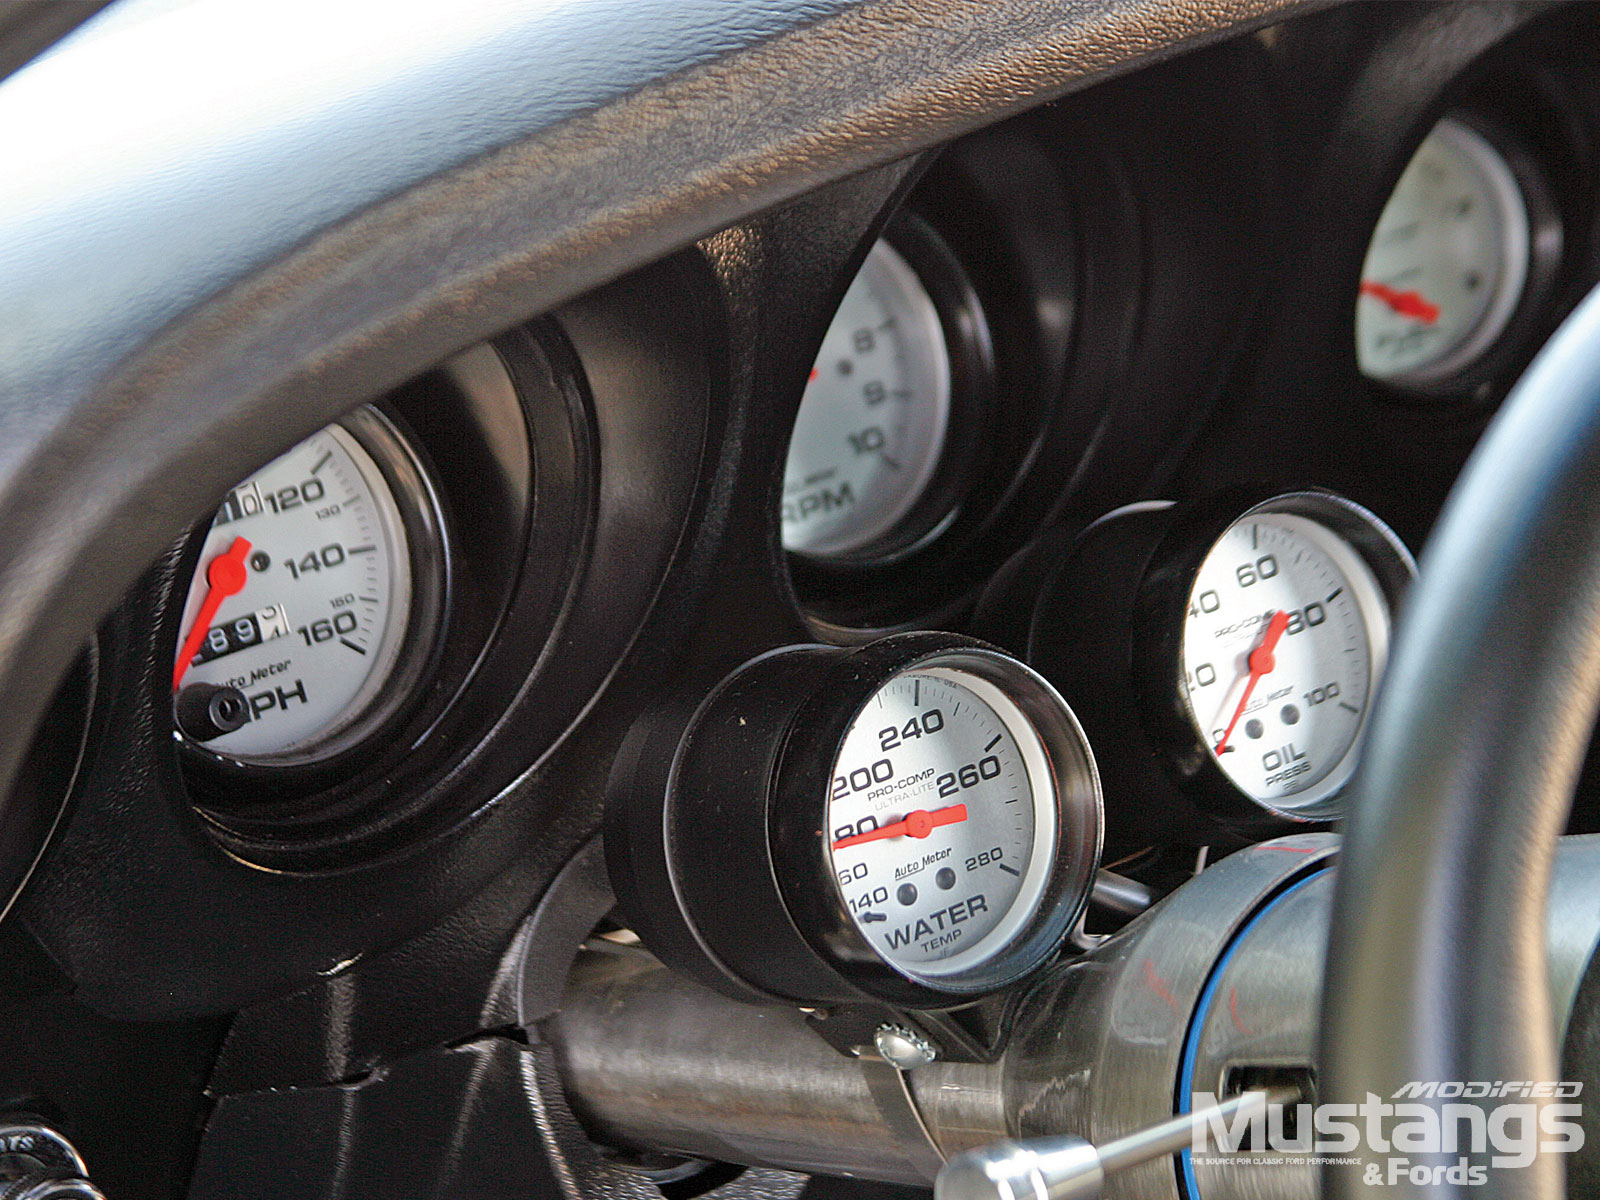 1969 Ford Mustang Gt Sportsroof Gauges